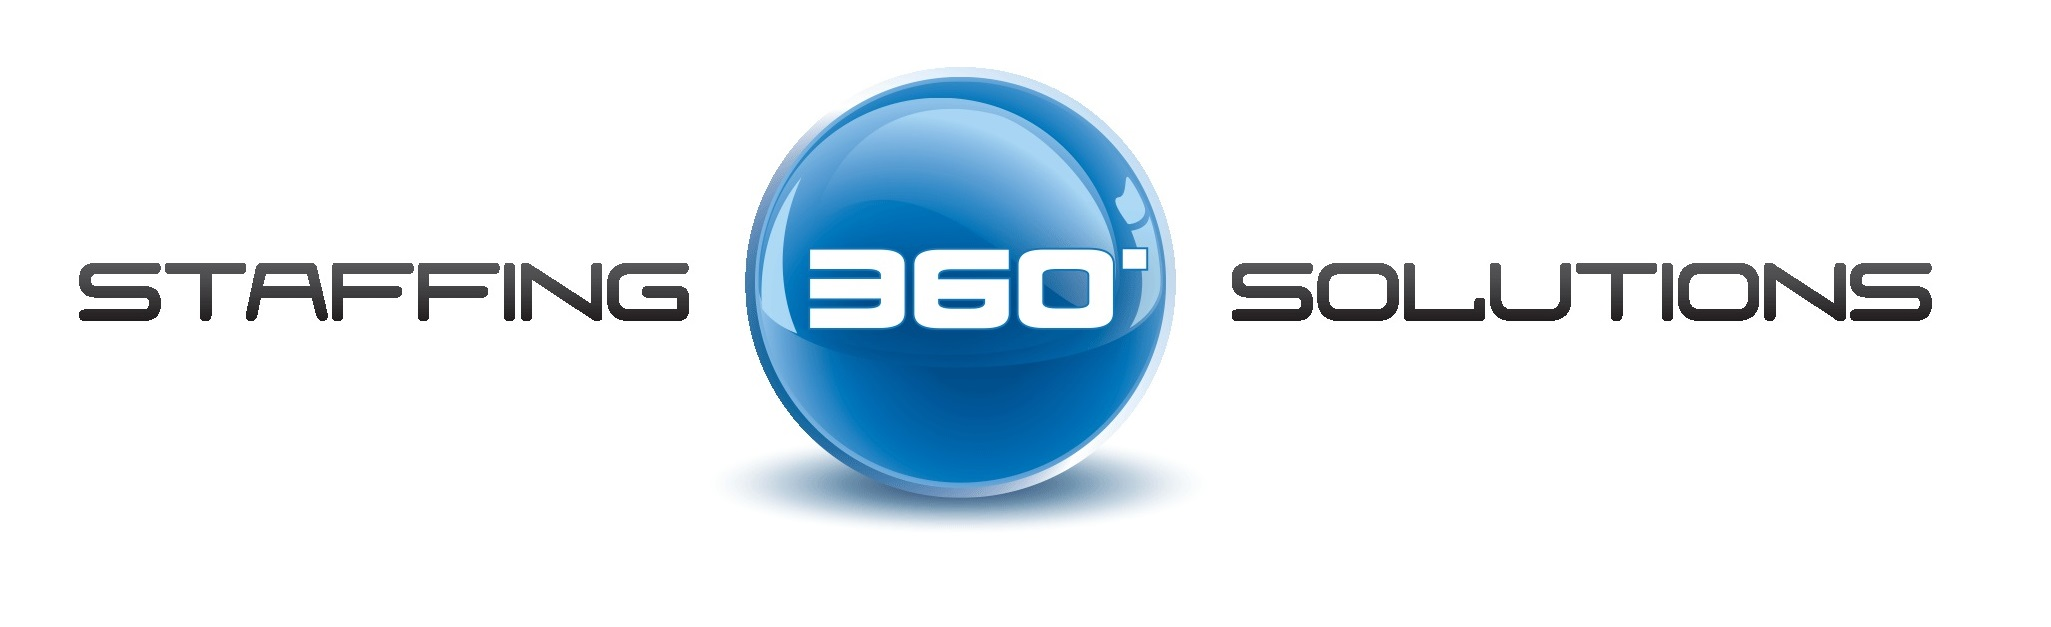 Staffing 360 Solutions, Inc.